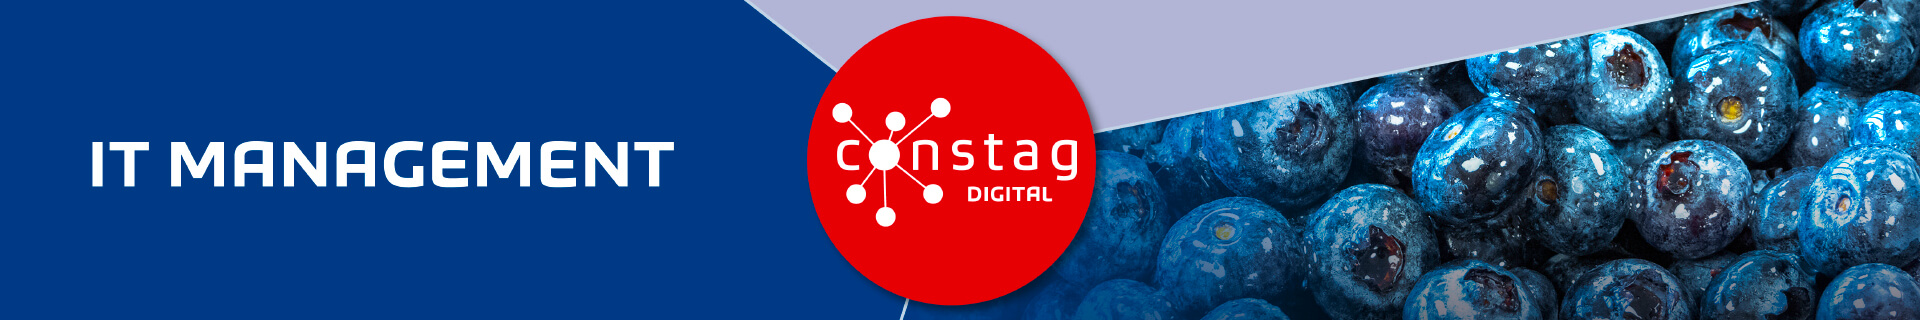 Constag Produkte IT-Management DIGITAL